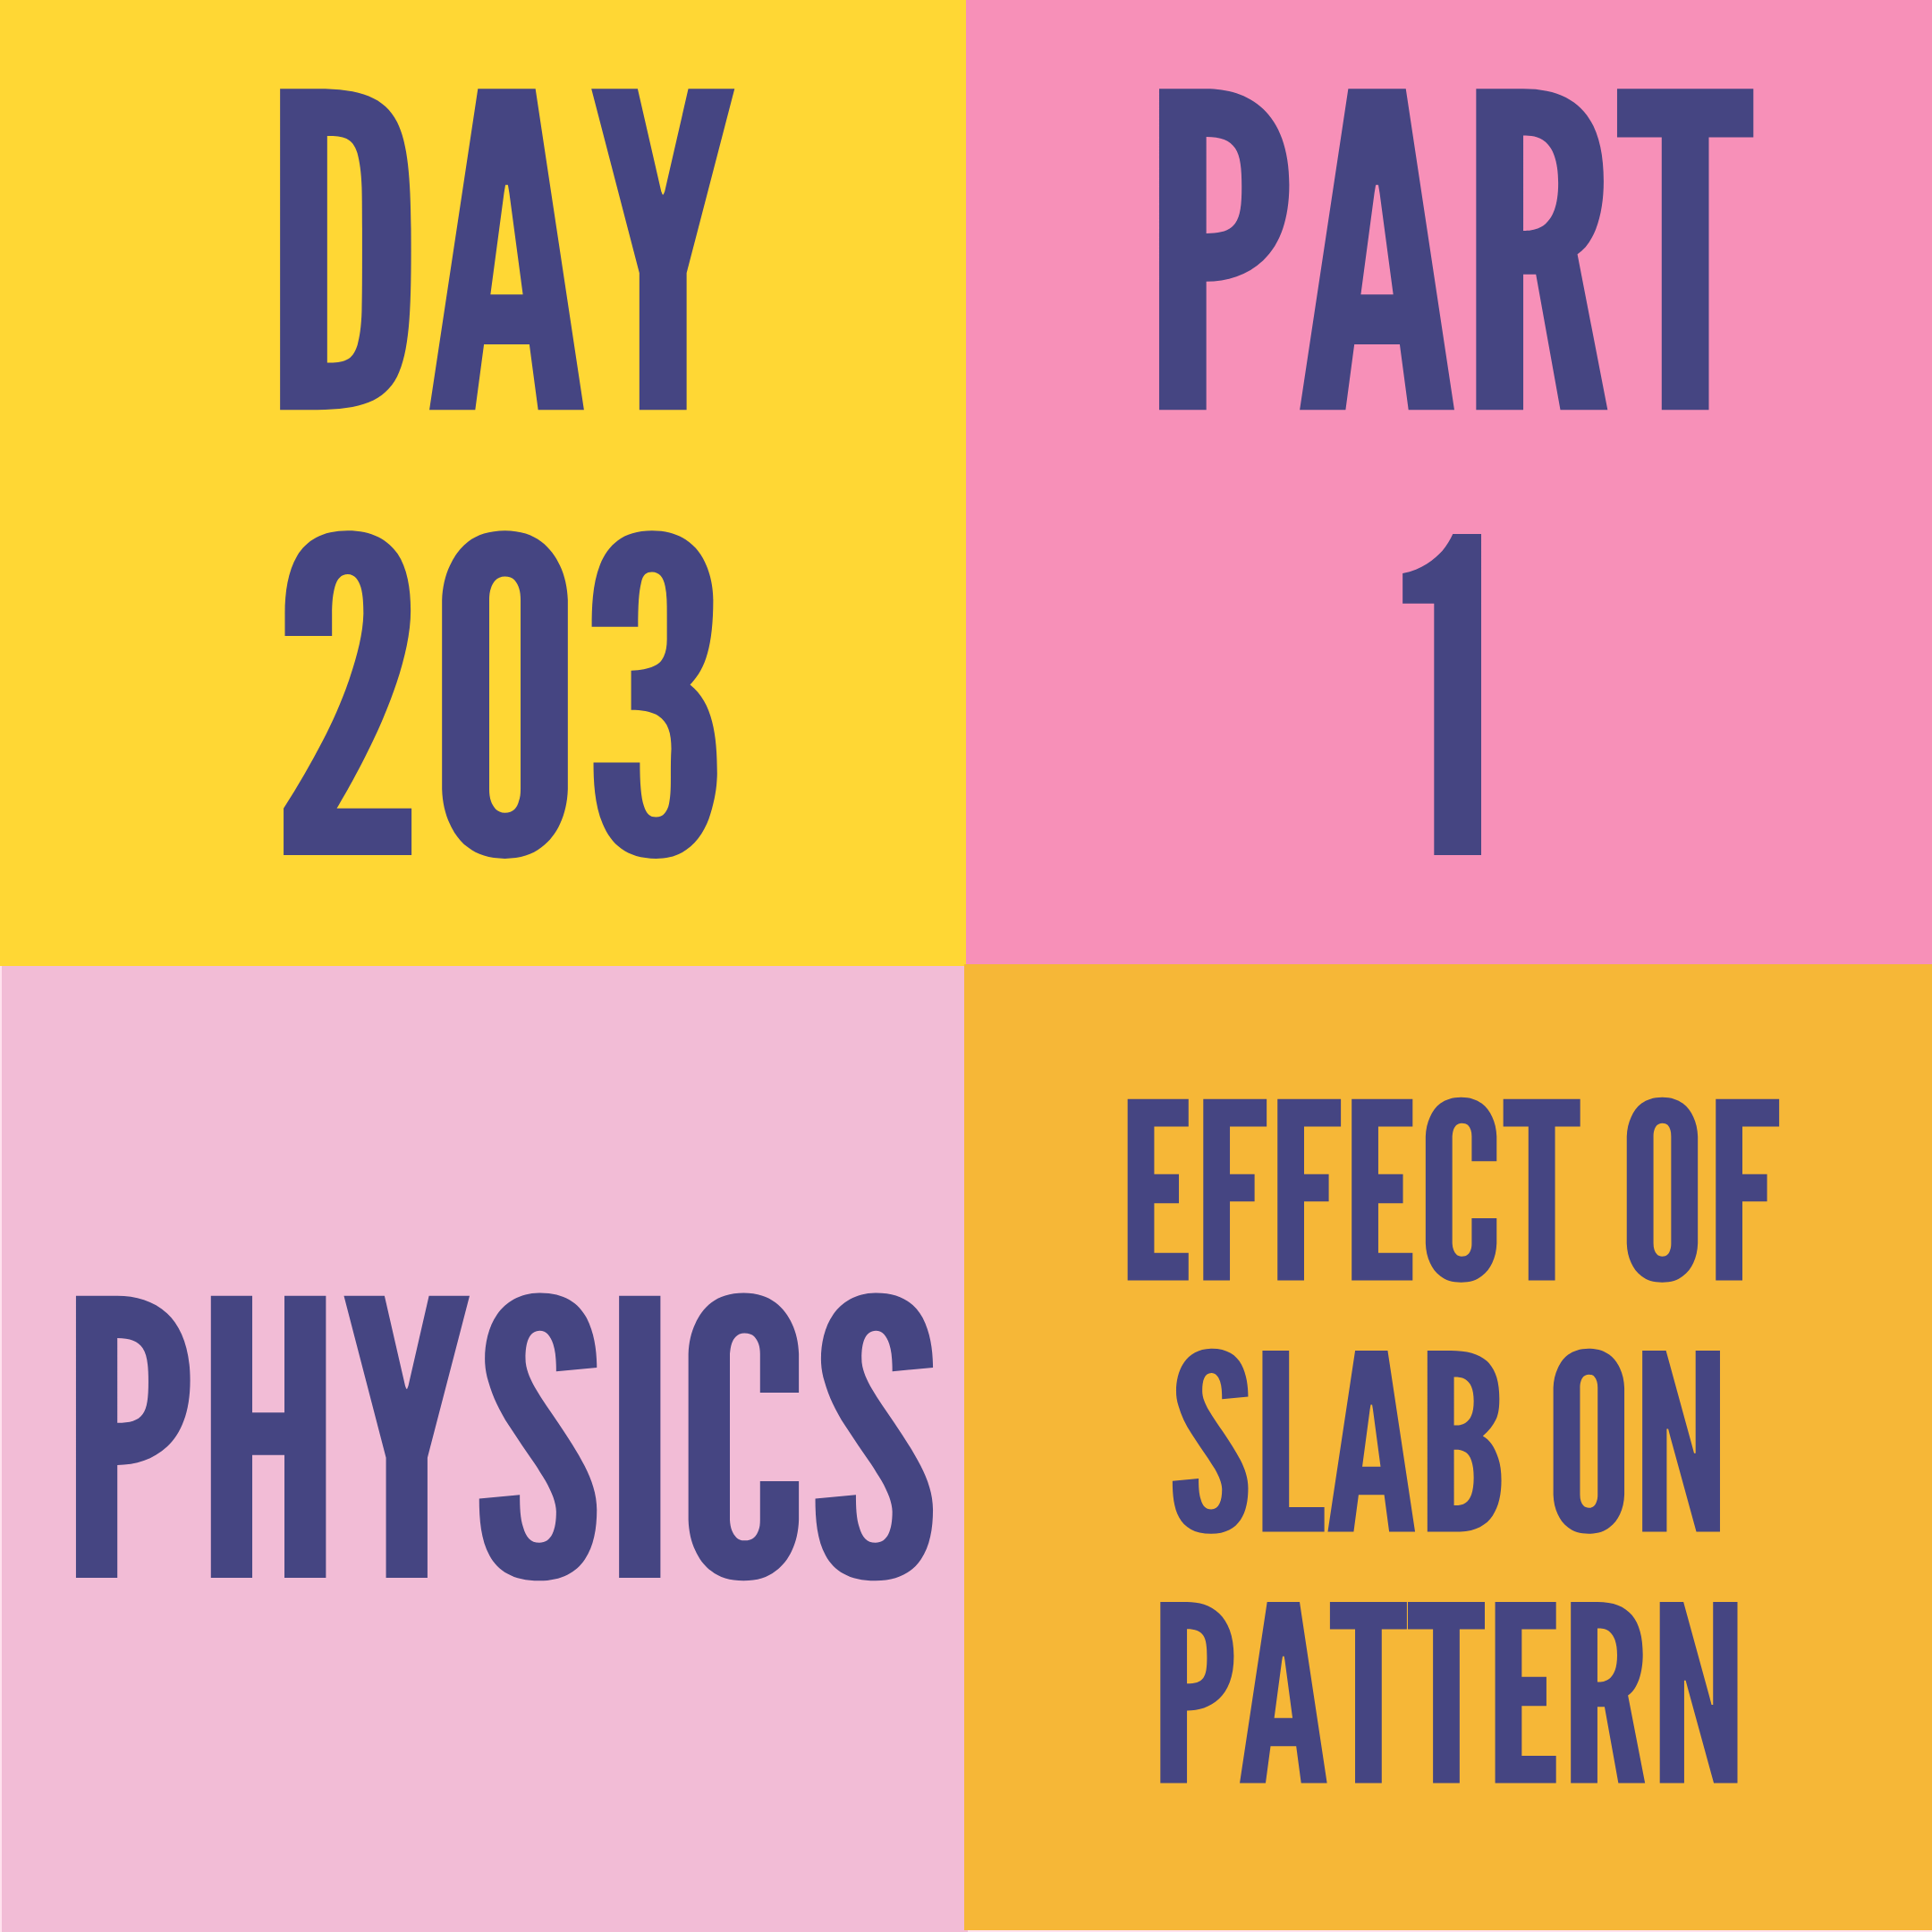 DAY-203 PART-1 EFFECT OF SLAB ON PATTERN